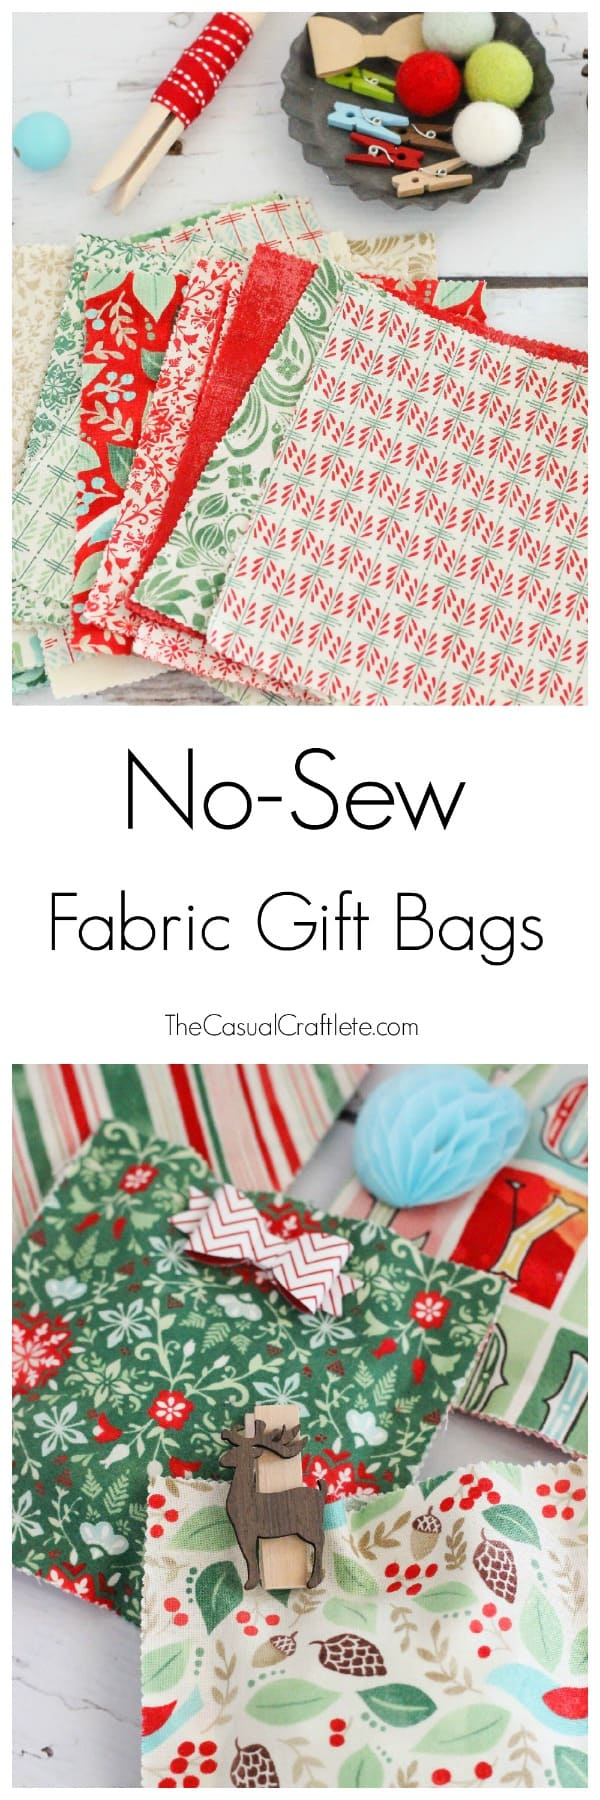 No-Sew Fabric Gift Bags